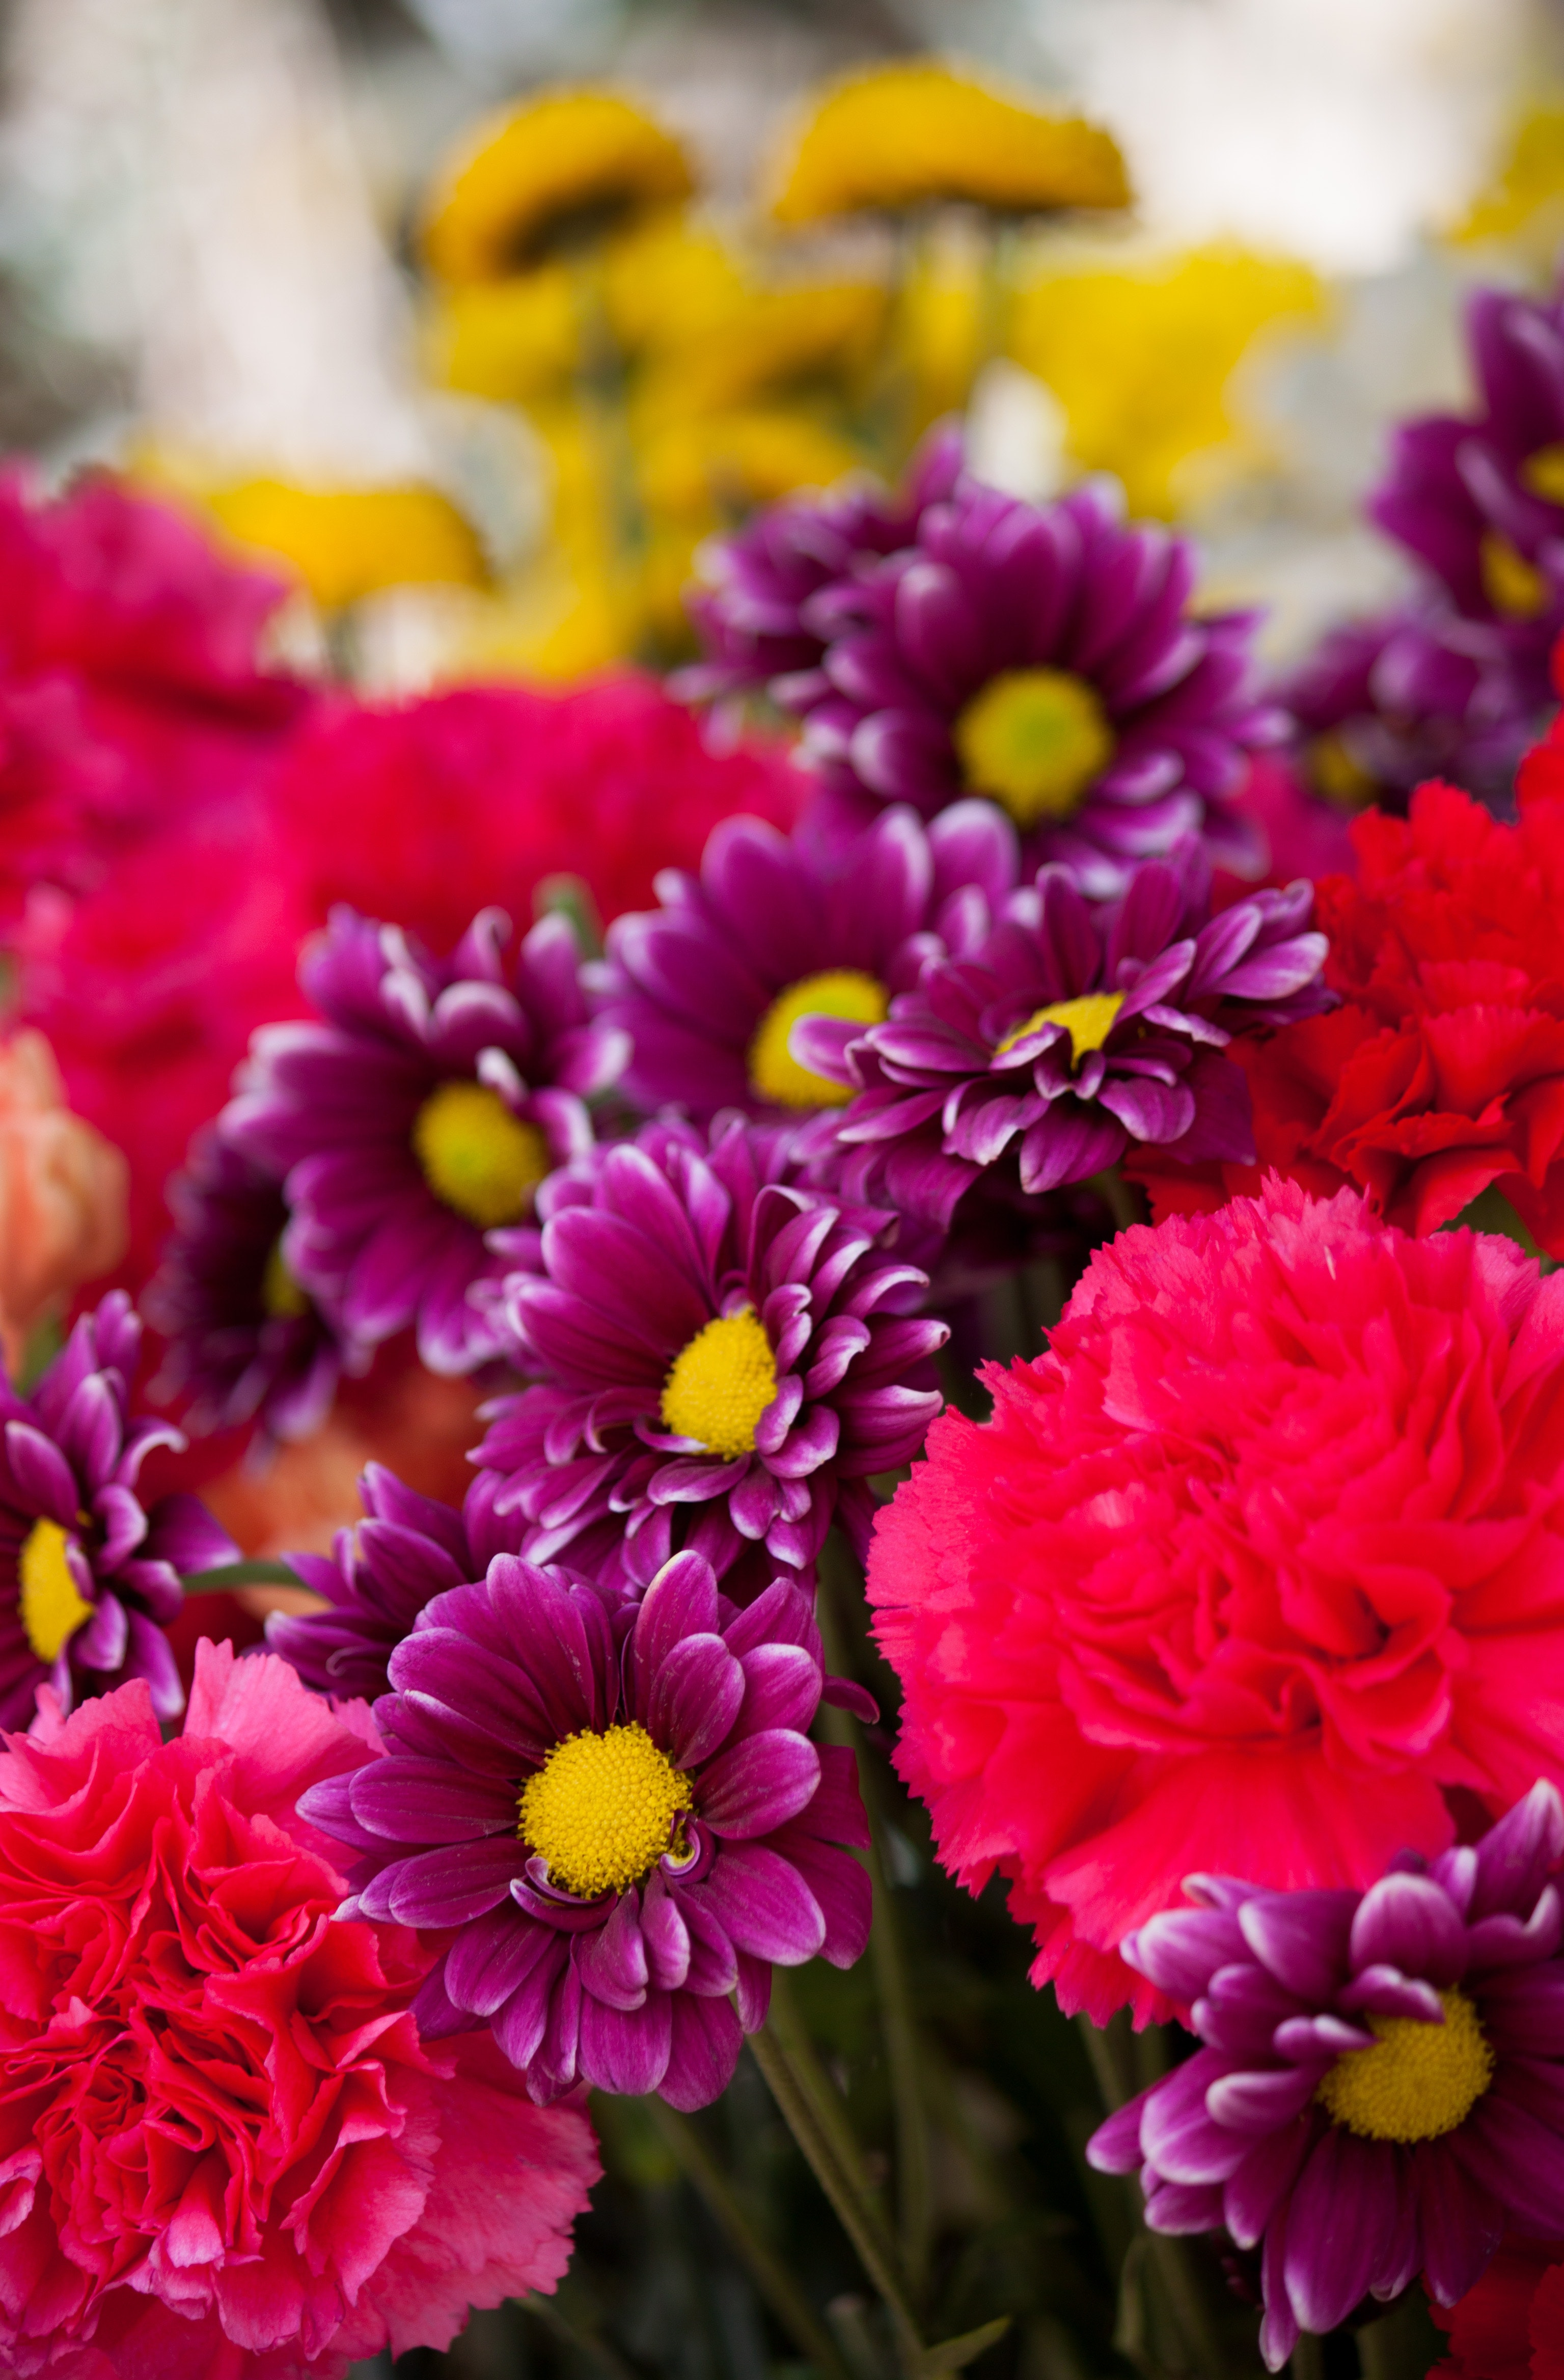 Bokeh Photo Of Purple Pink And Yellow Flowers Free Stock Photo